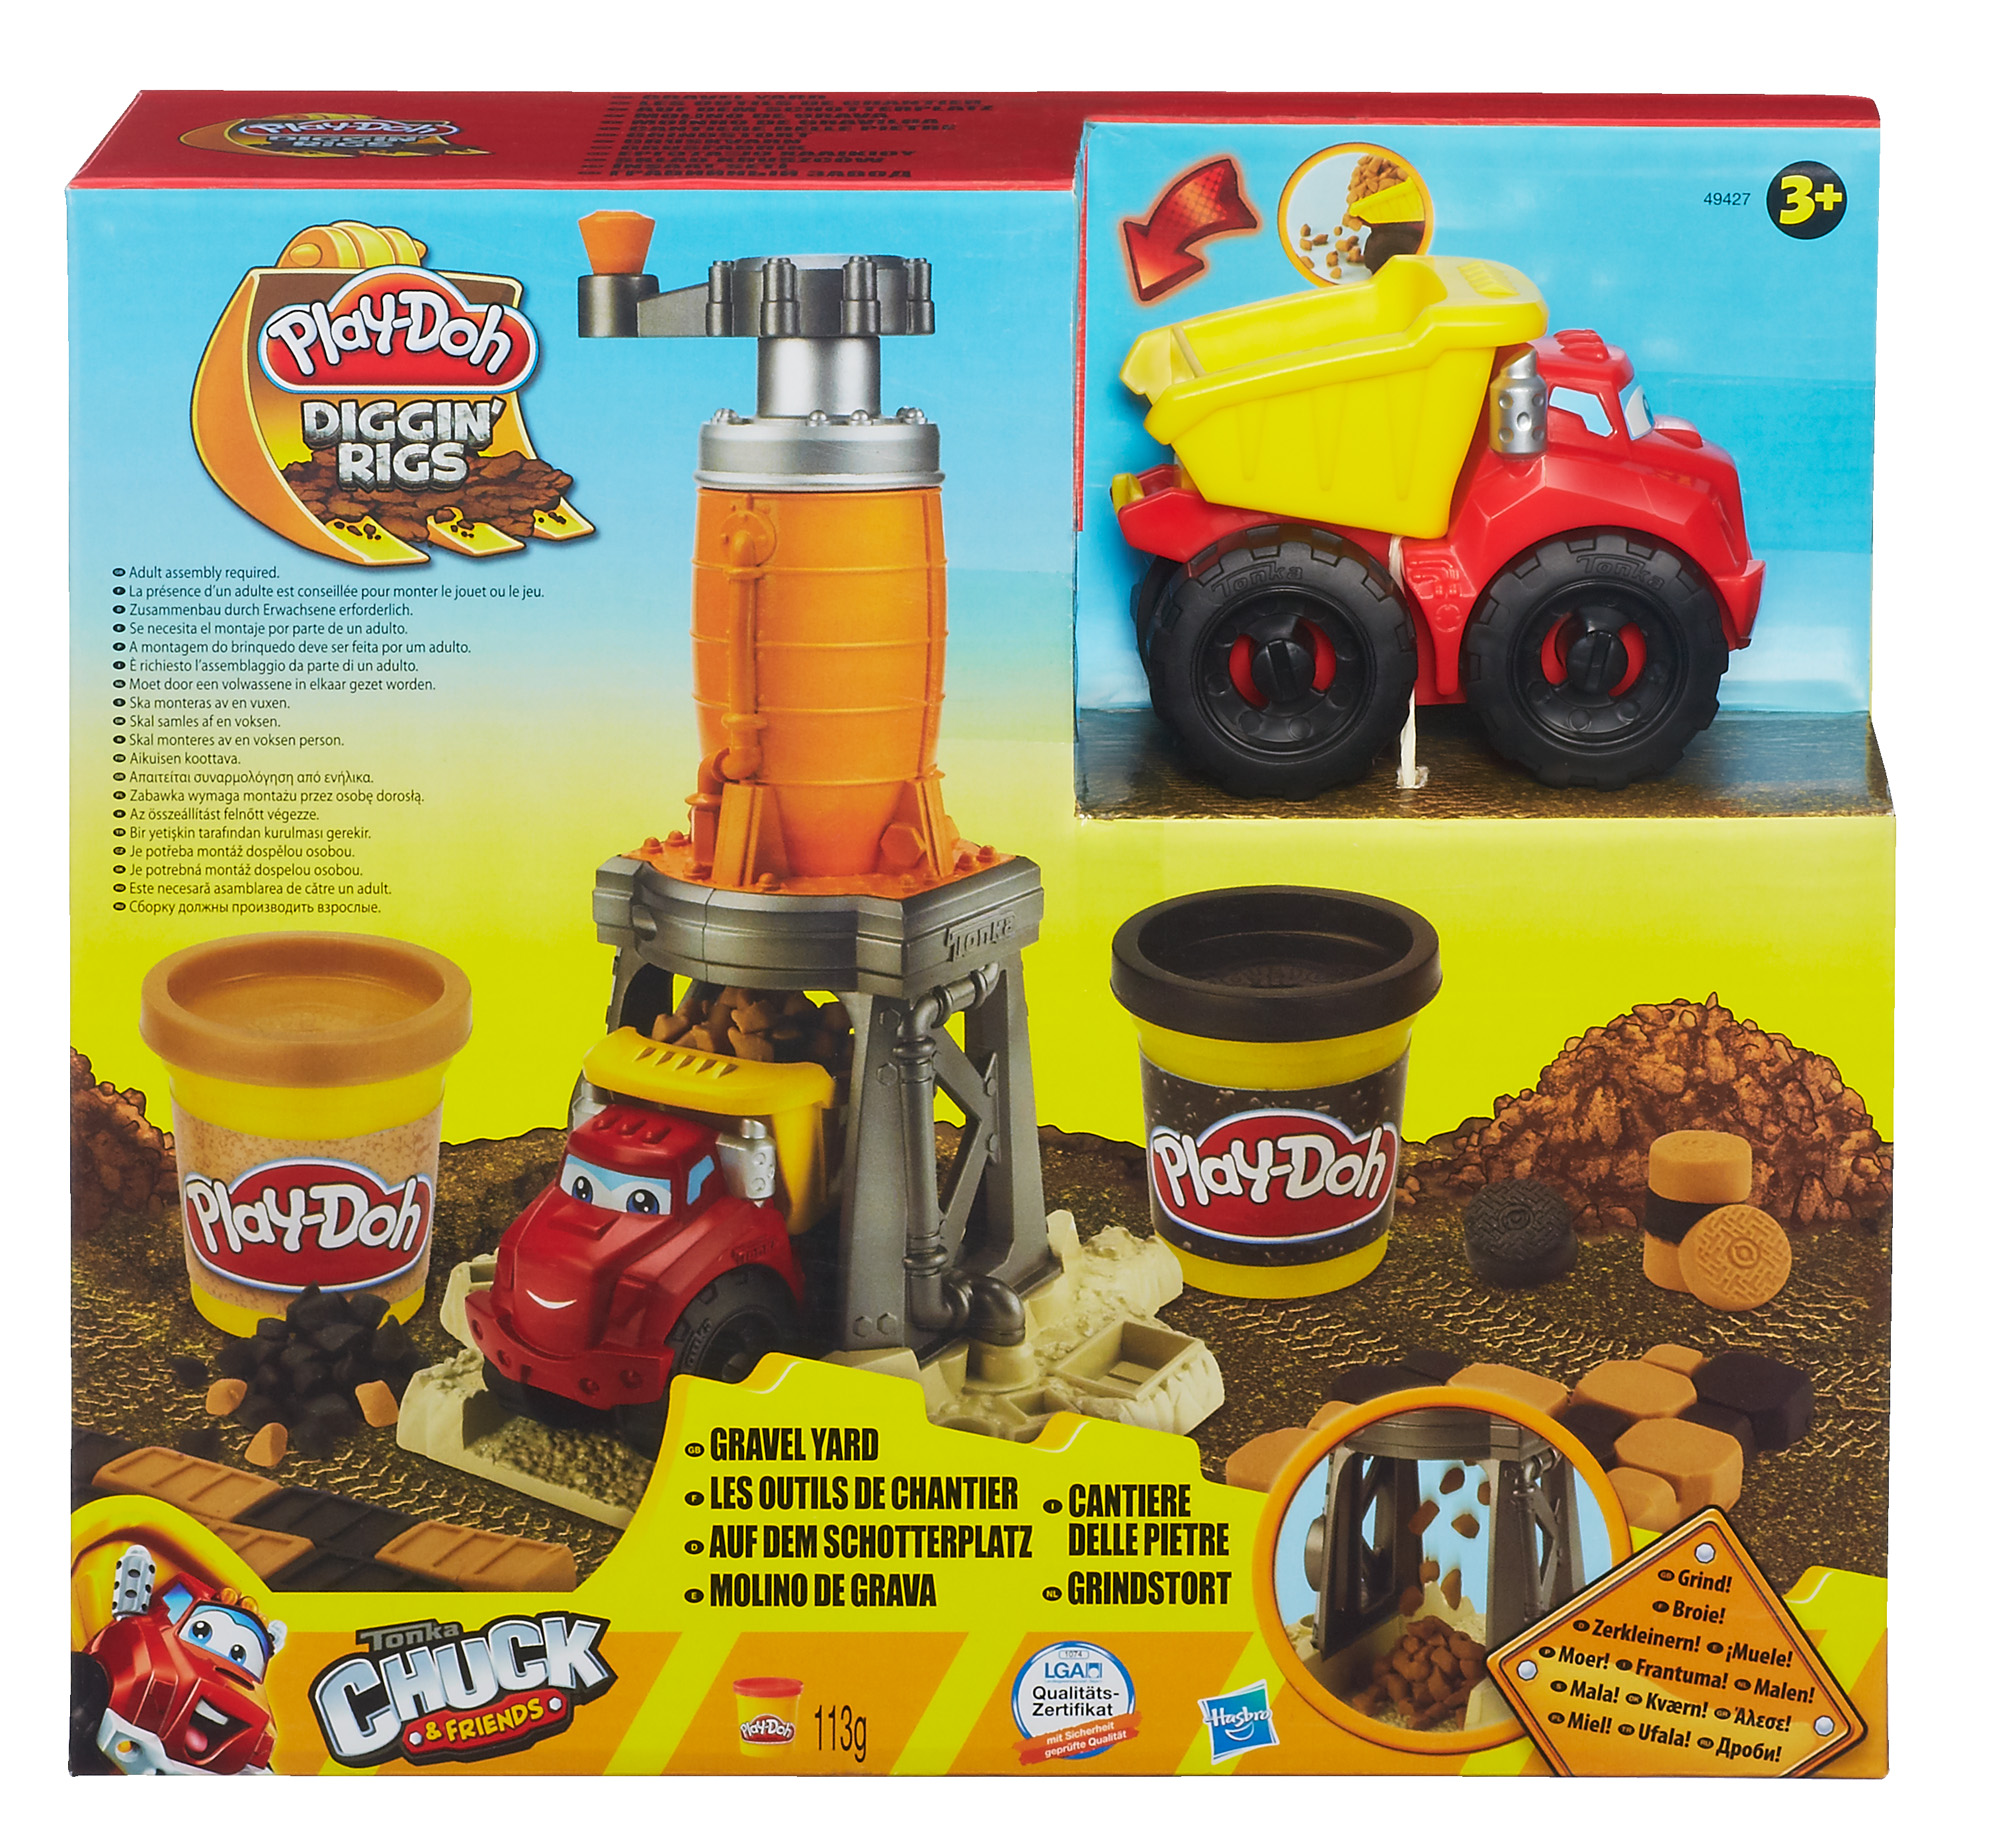 Play-Doh Digging Rigs Playset